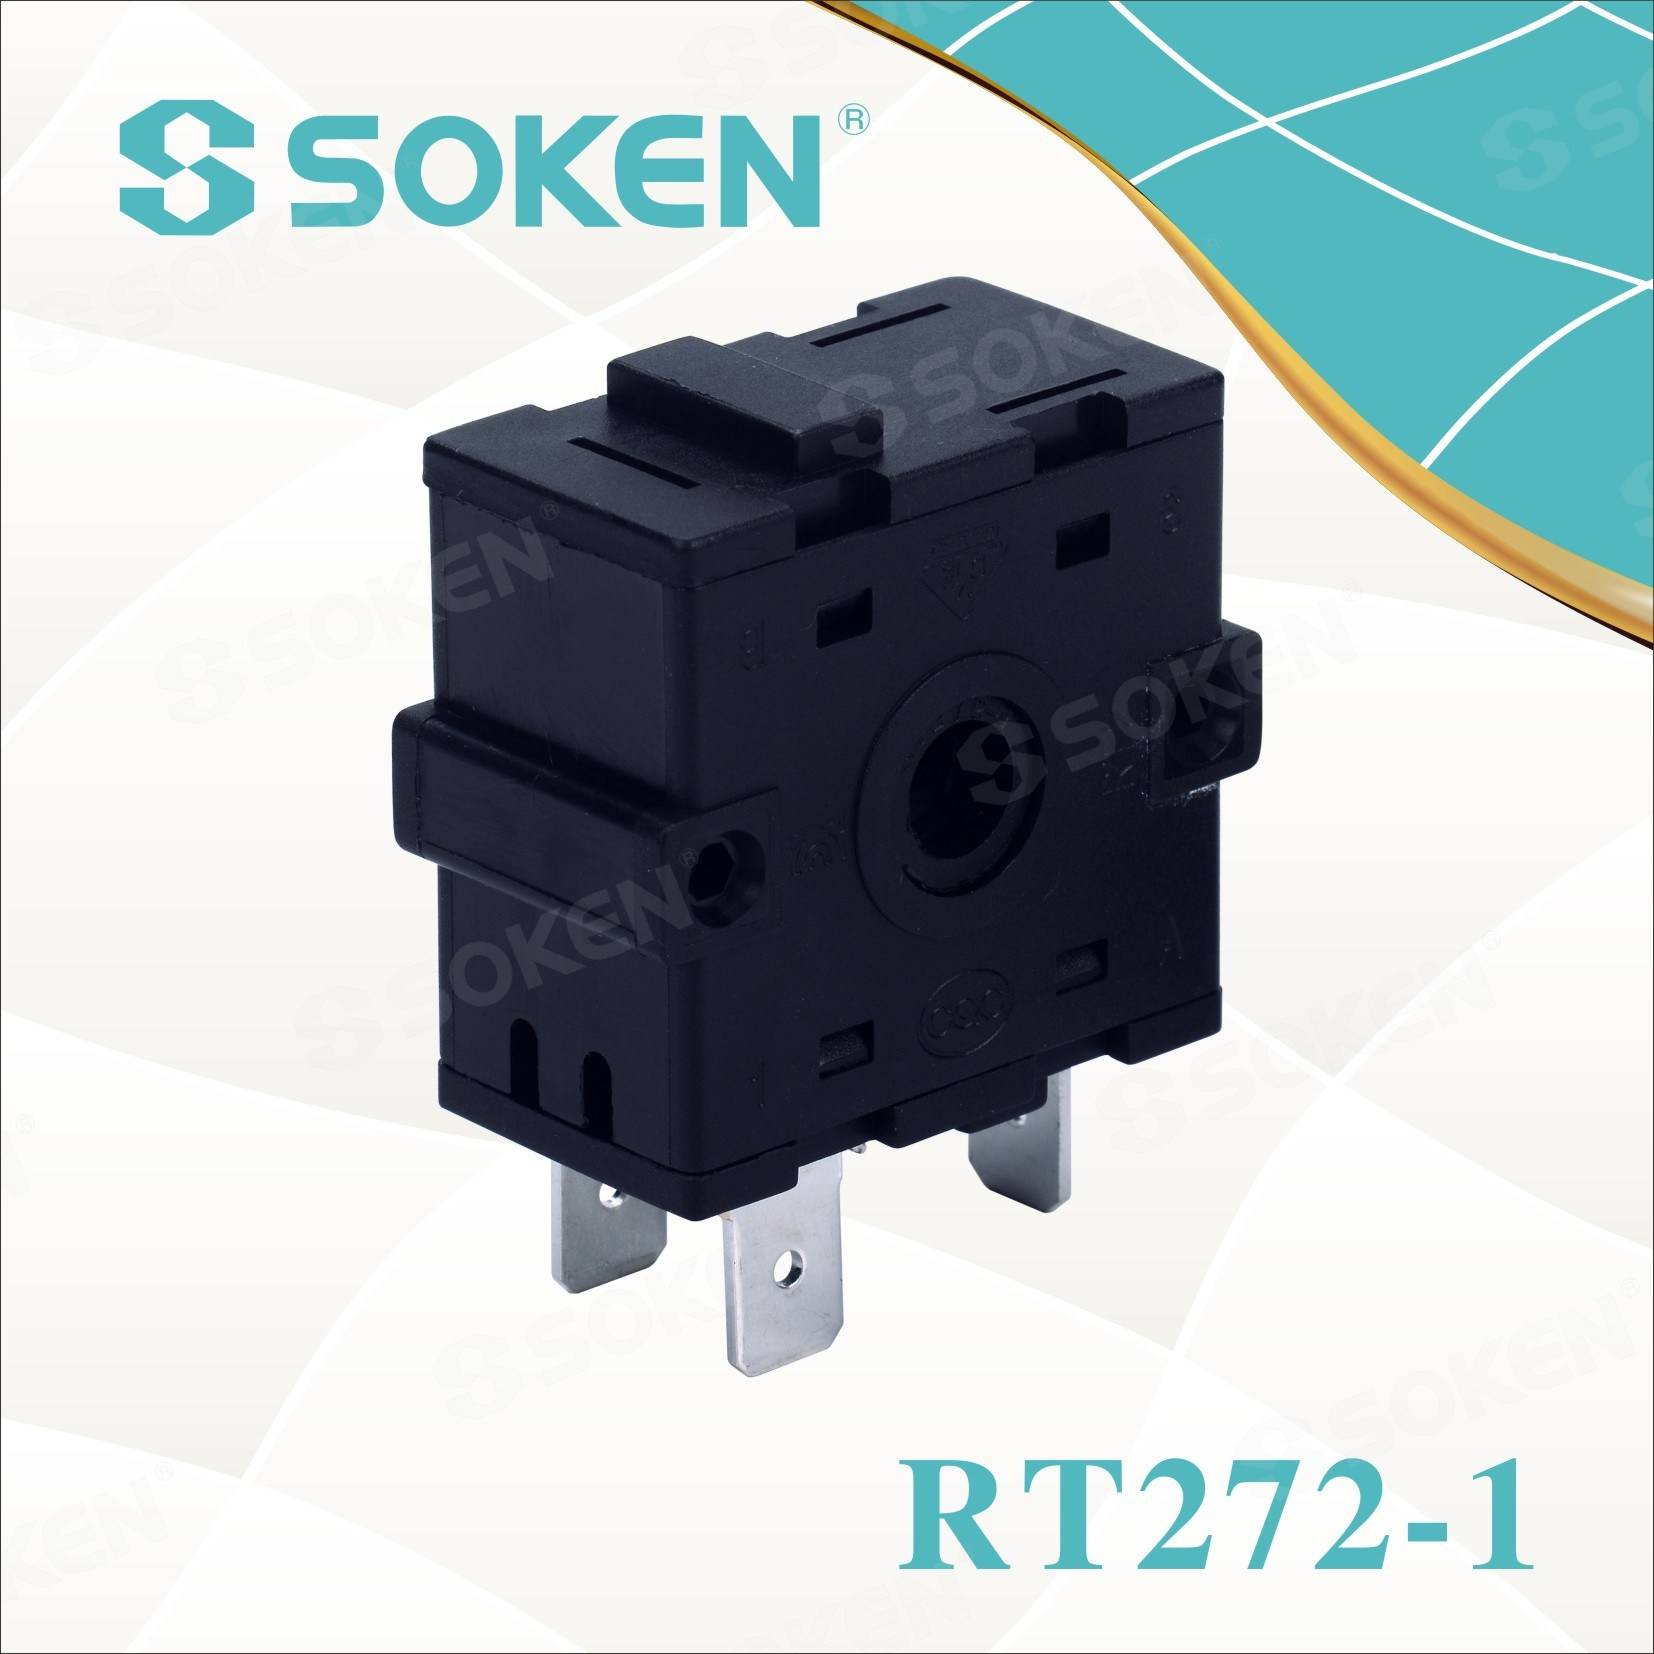 Soken 8 Positie Rope Chain Rotary Switch